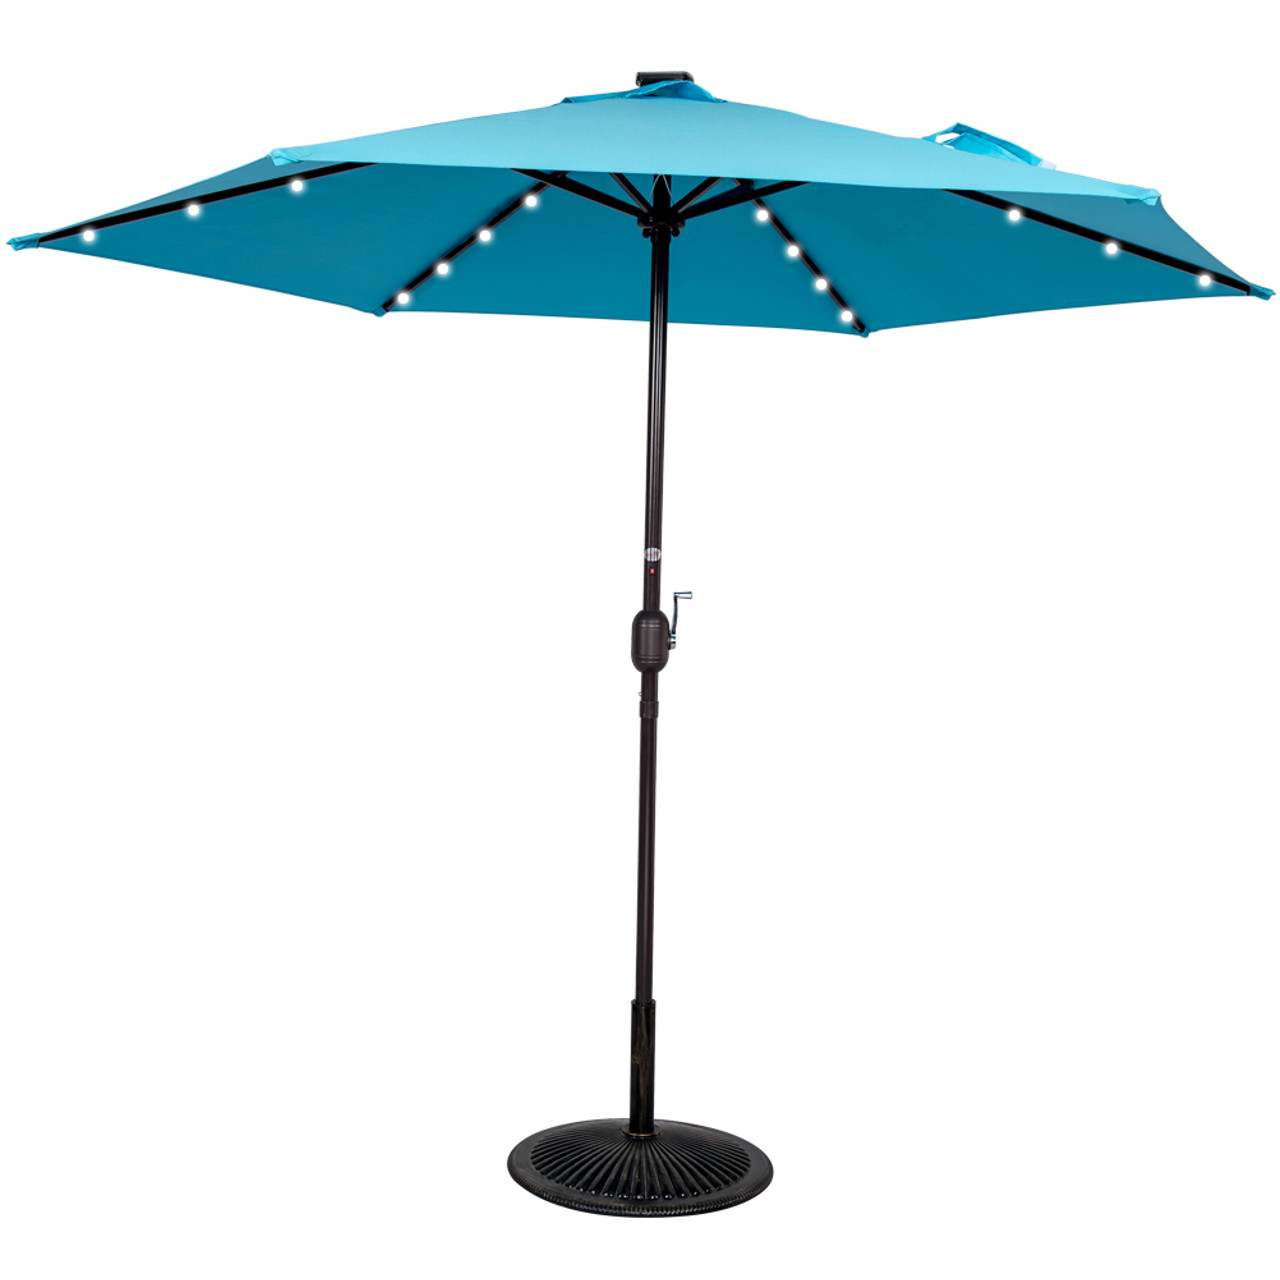 9ft 24 Led Light Outdoor Market Patio Umbrella Garden Pool With Crank, 6  Ribs (Light Blue)